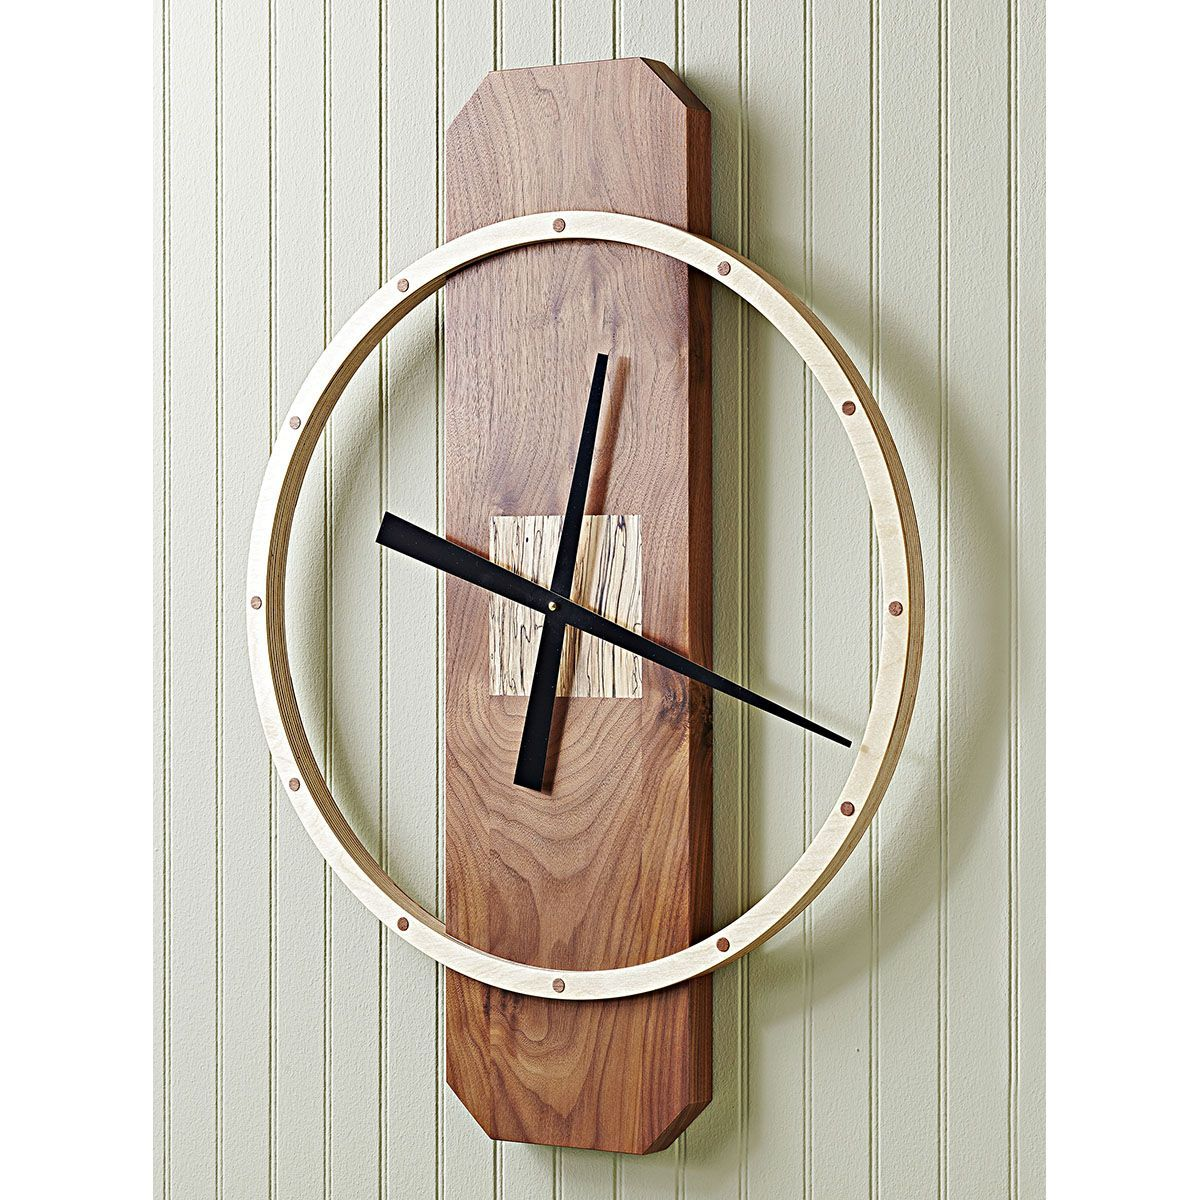 Big time wall clock woodworking plan Build this